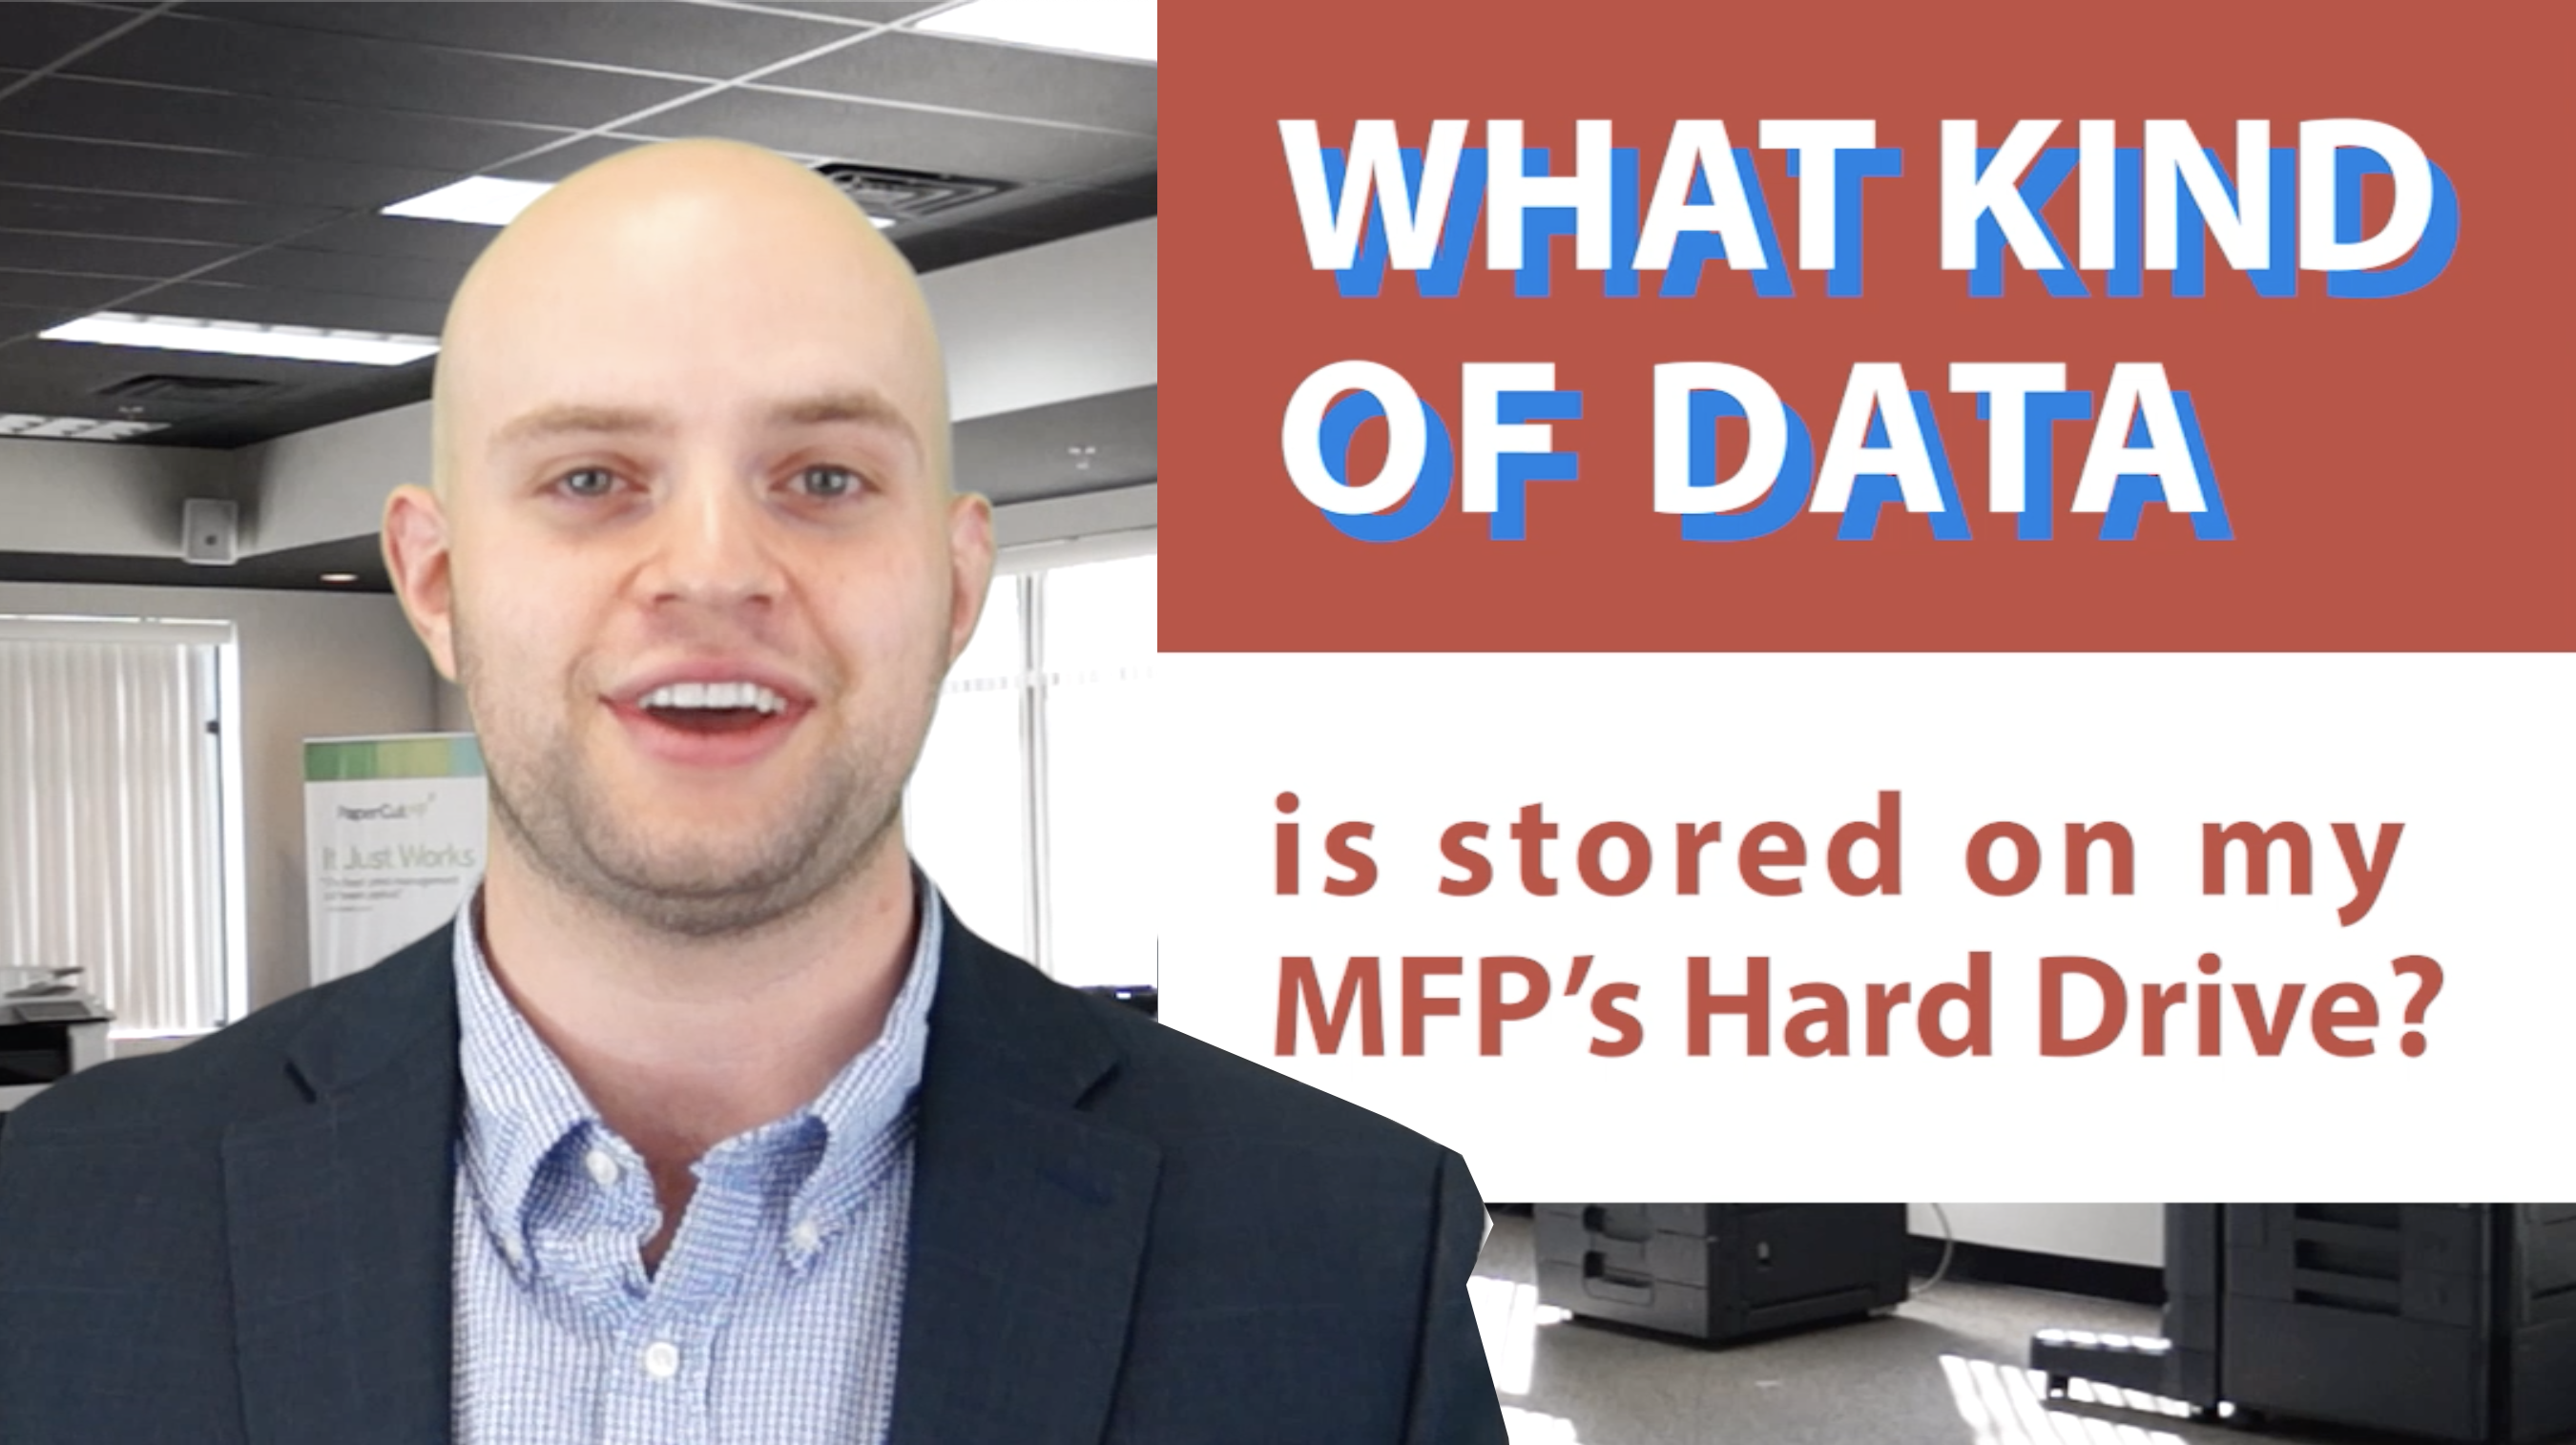 What kind of data is stored on my MFPs hard drive?